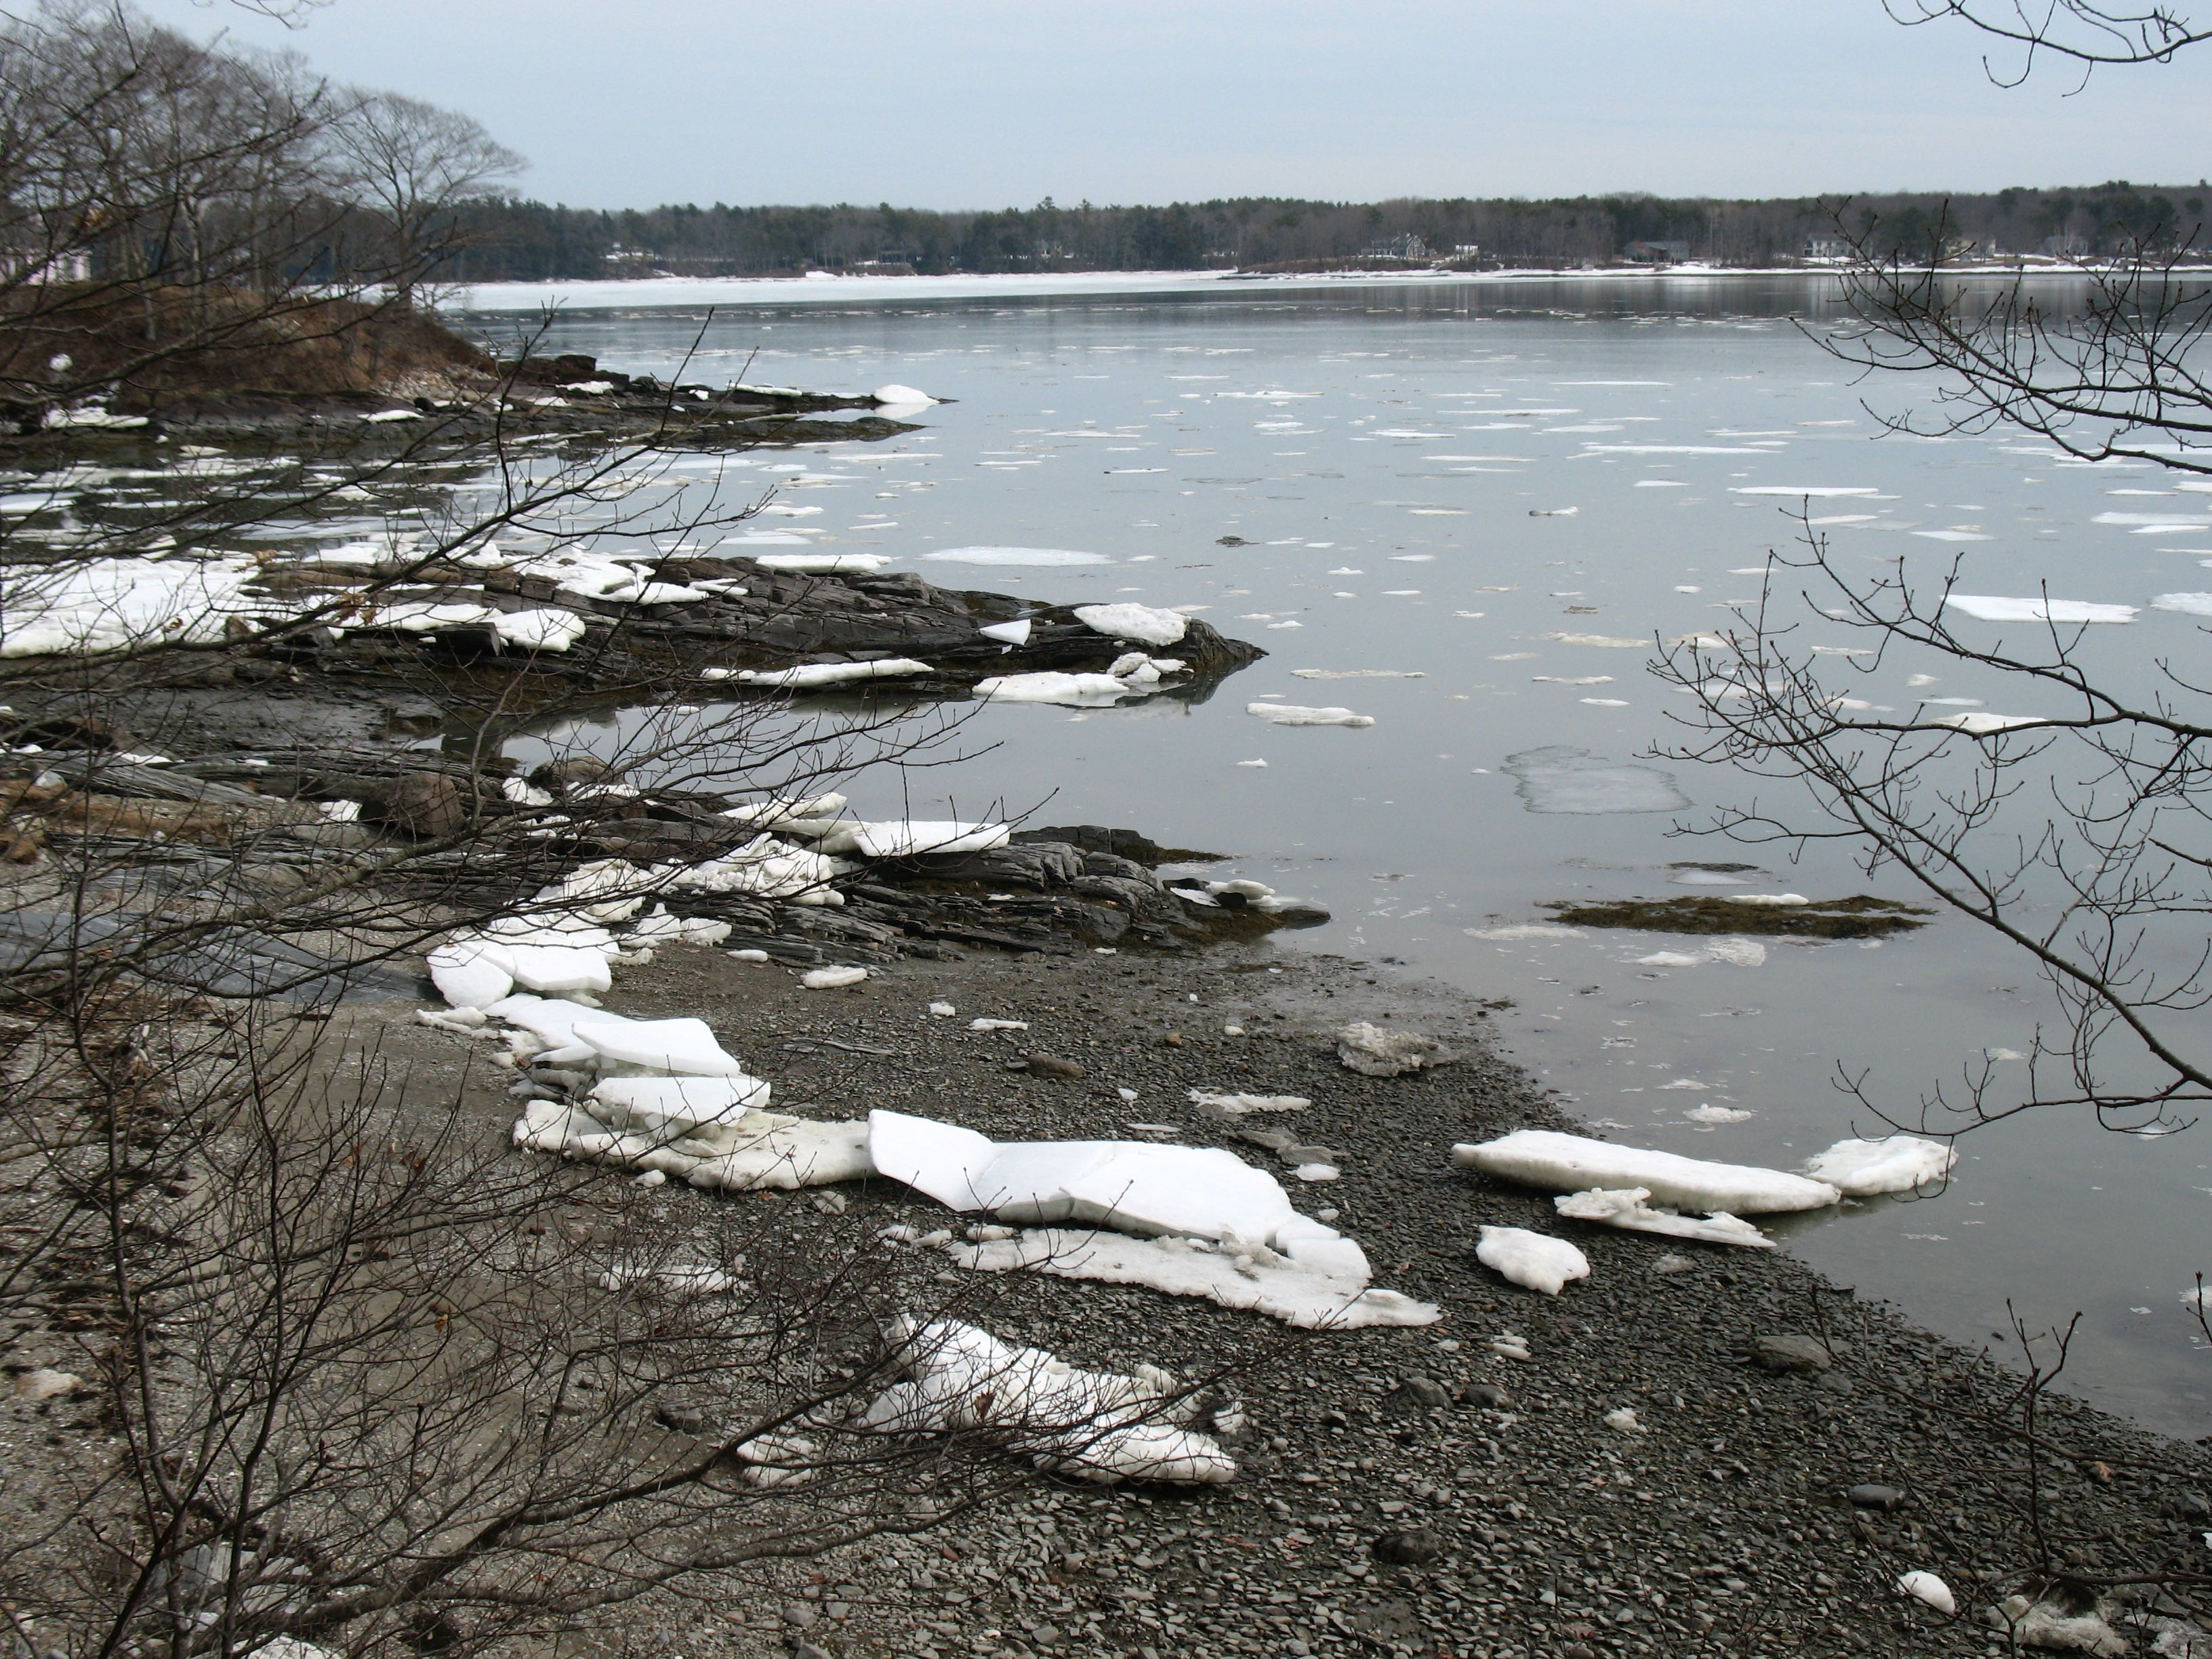 Remnant ice, with the still unbroken sheet  in the background.